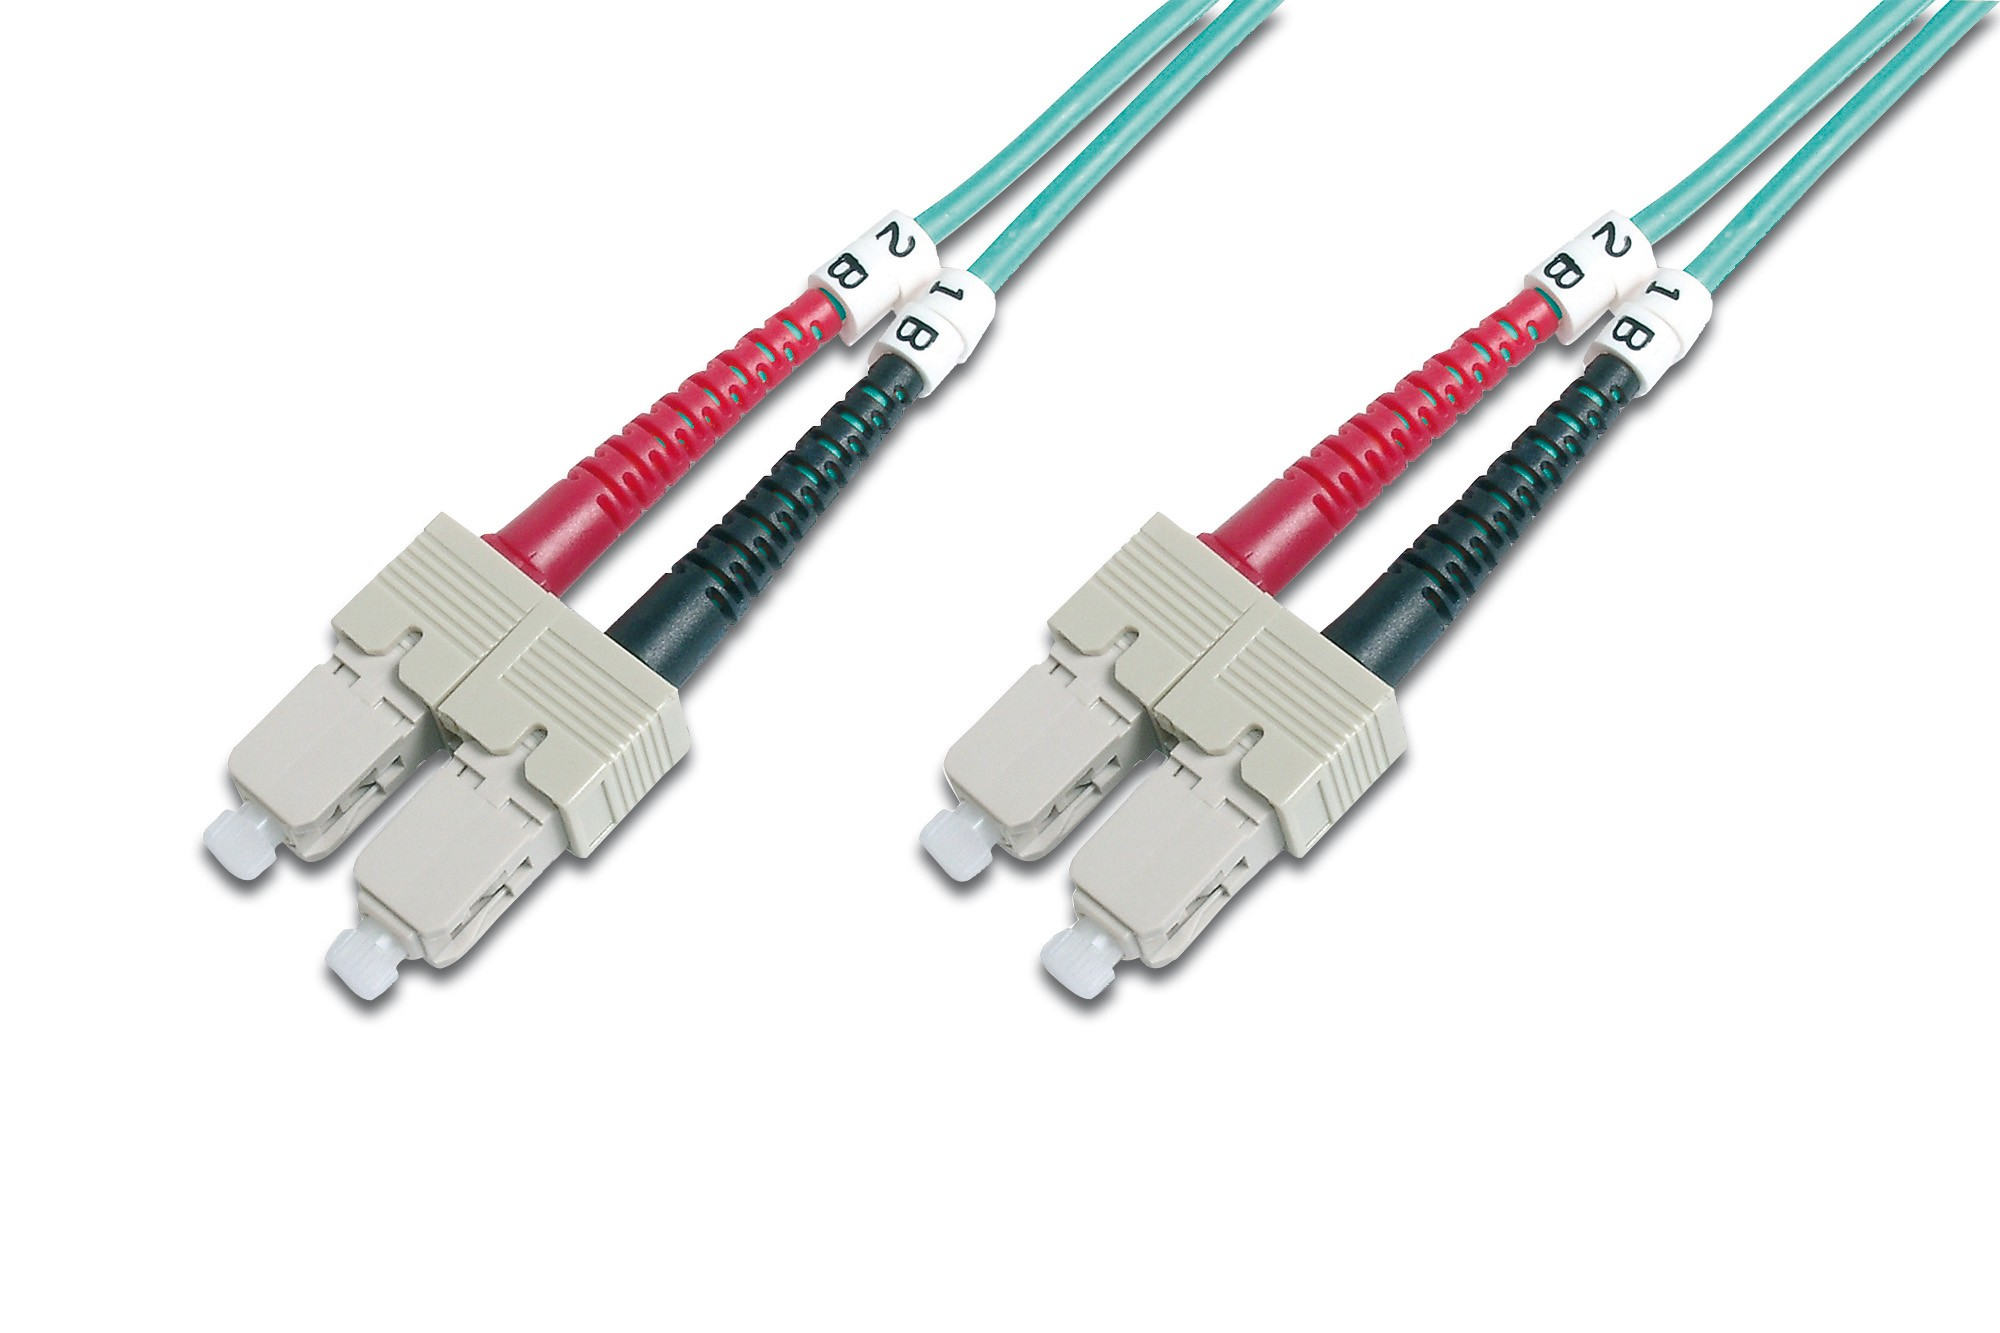 DIGITUS DK-2522-10/3 SC/SC, 10 M 10M SC MULTICOLOUR FIBER OPTIC CABLE